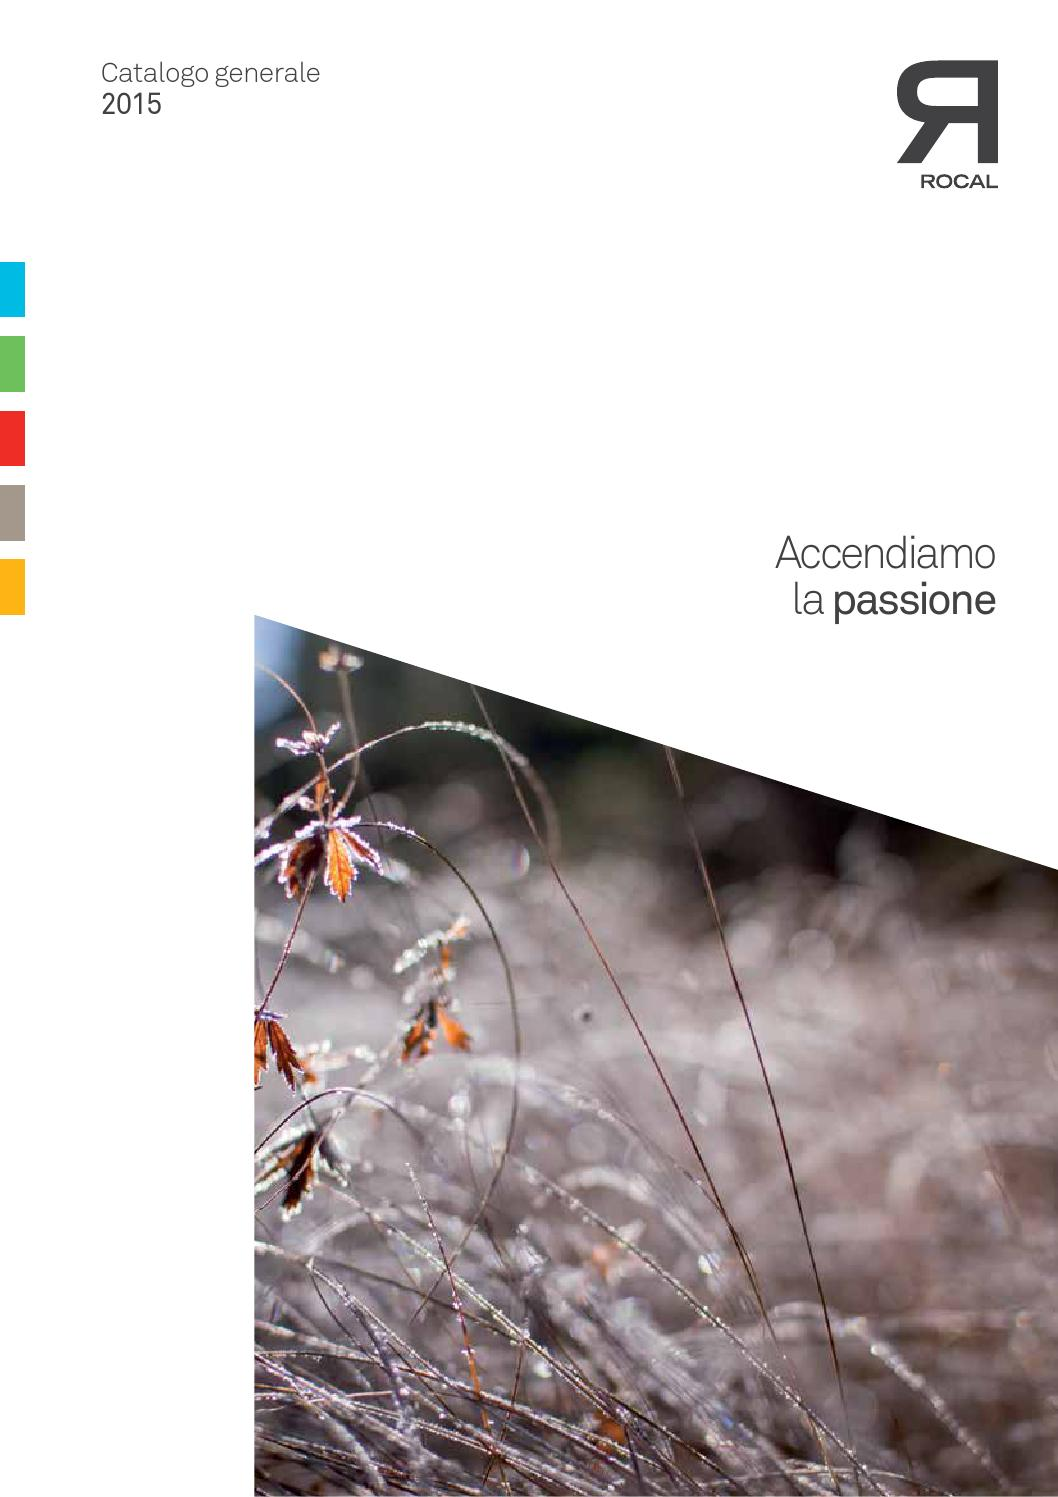 Caminetti Rocal Prezzi Rocal Catalogo 2015 By Ambient7 S R L Issuu